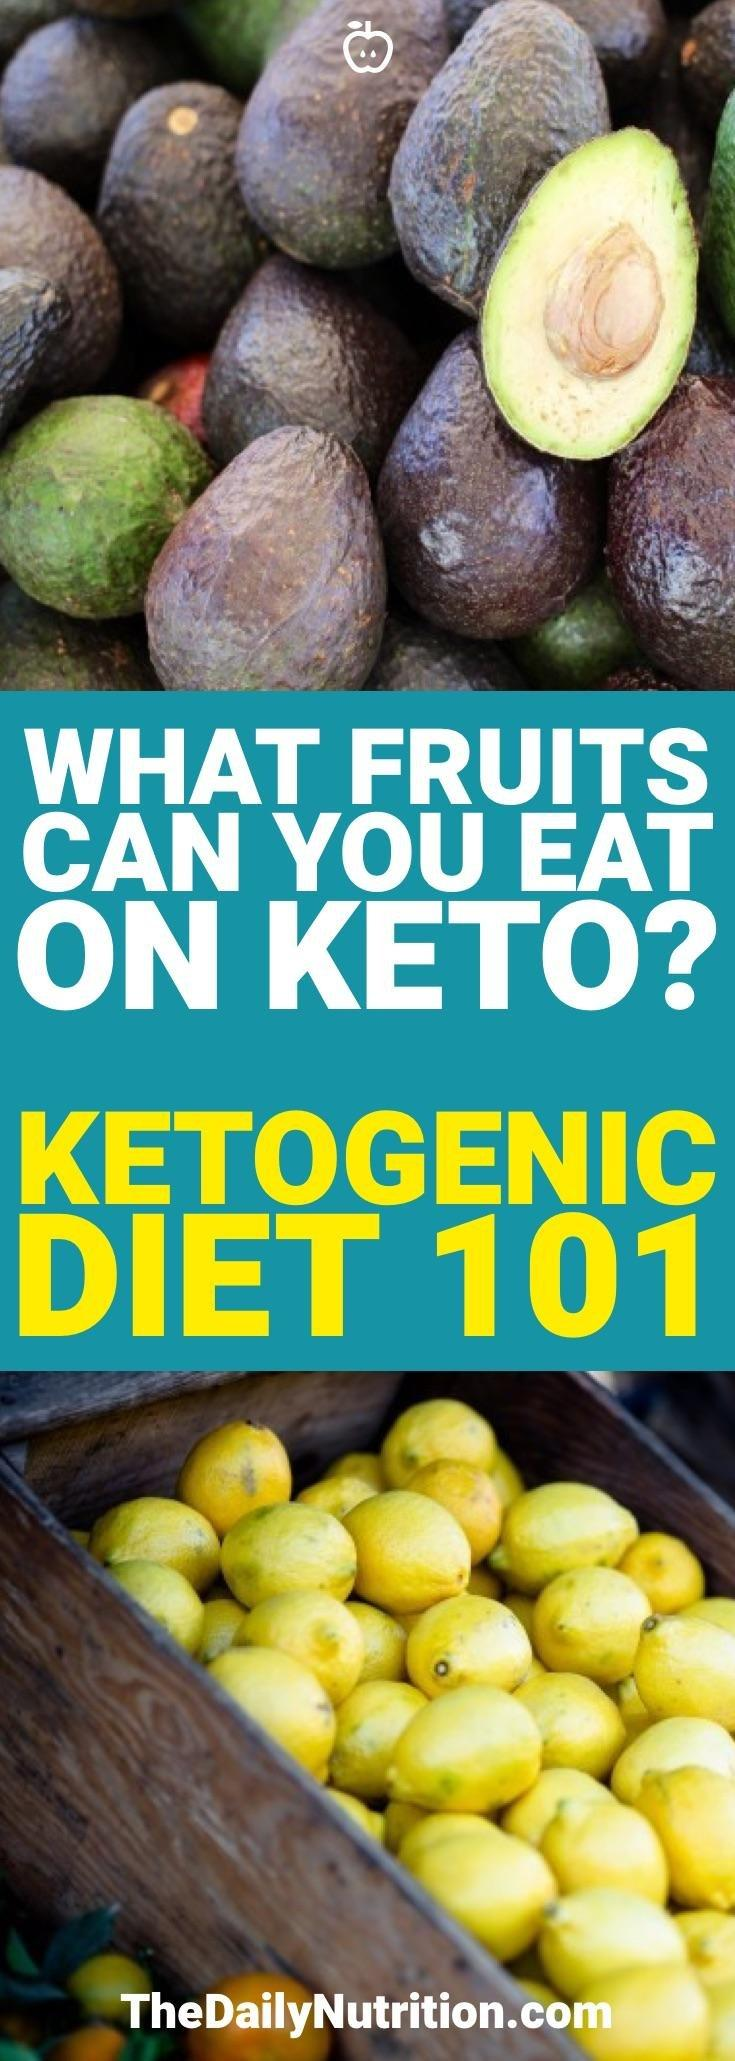 Can You Be In Ketosis And Eat Fruit?